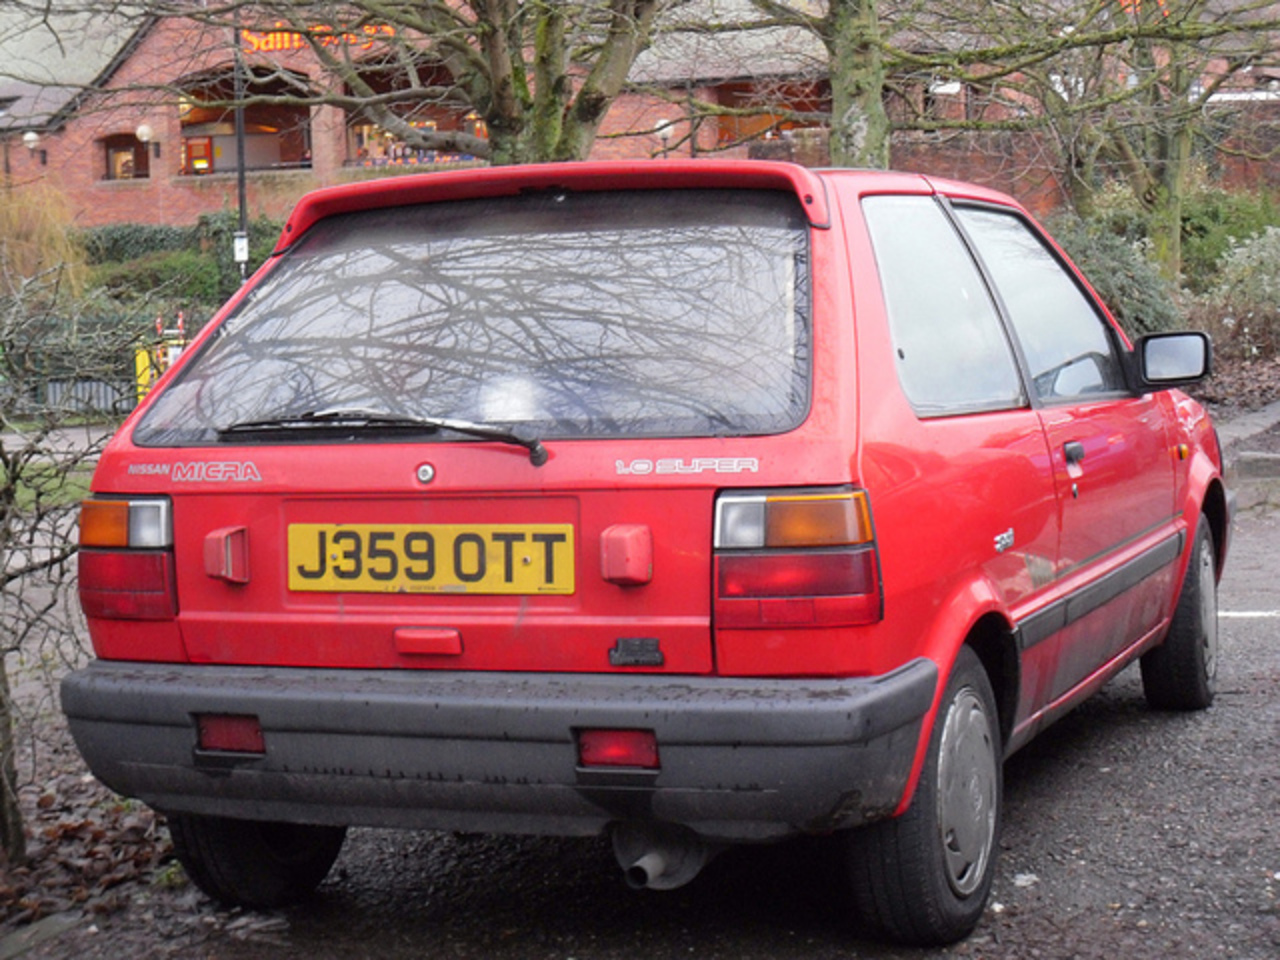 1992 Nissan Micra K10 1.0 Super. | Flickr - Photo Sharing!